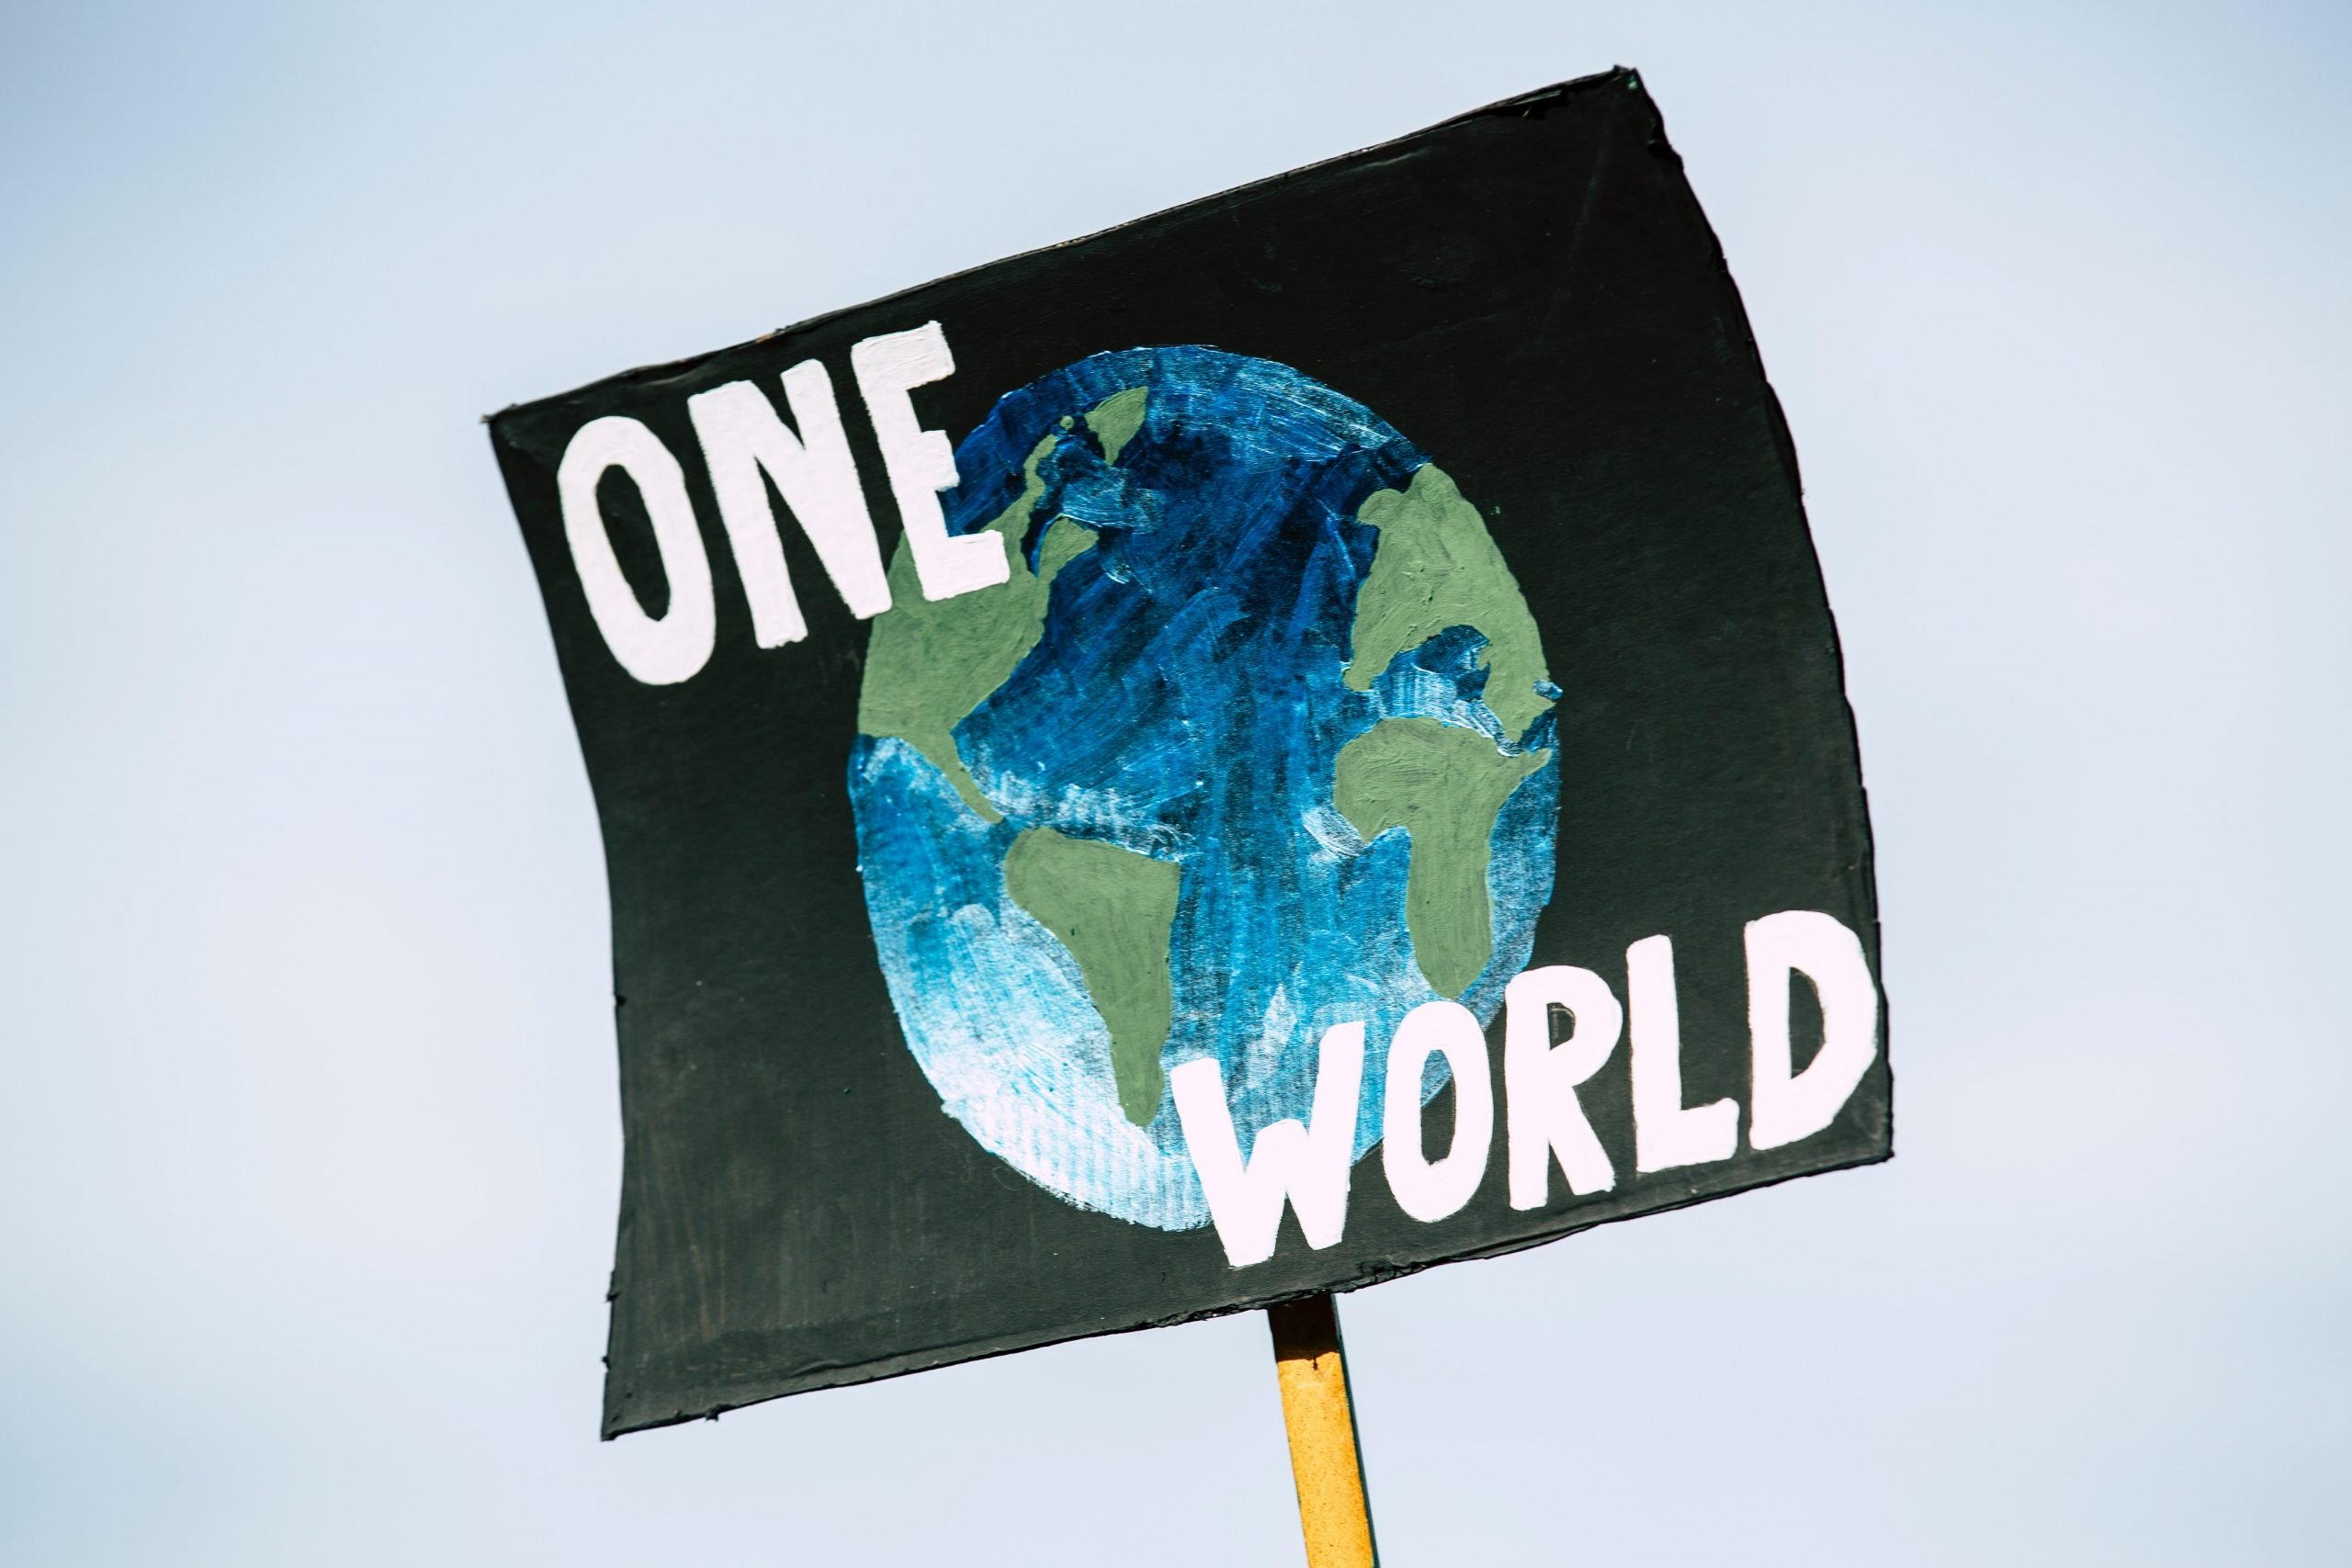 """A climate protest sign that shows planet Earth with the text """"One World"""""""